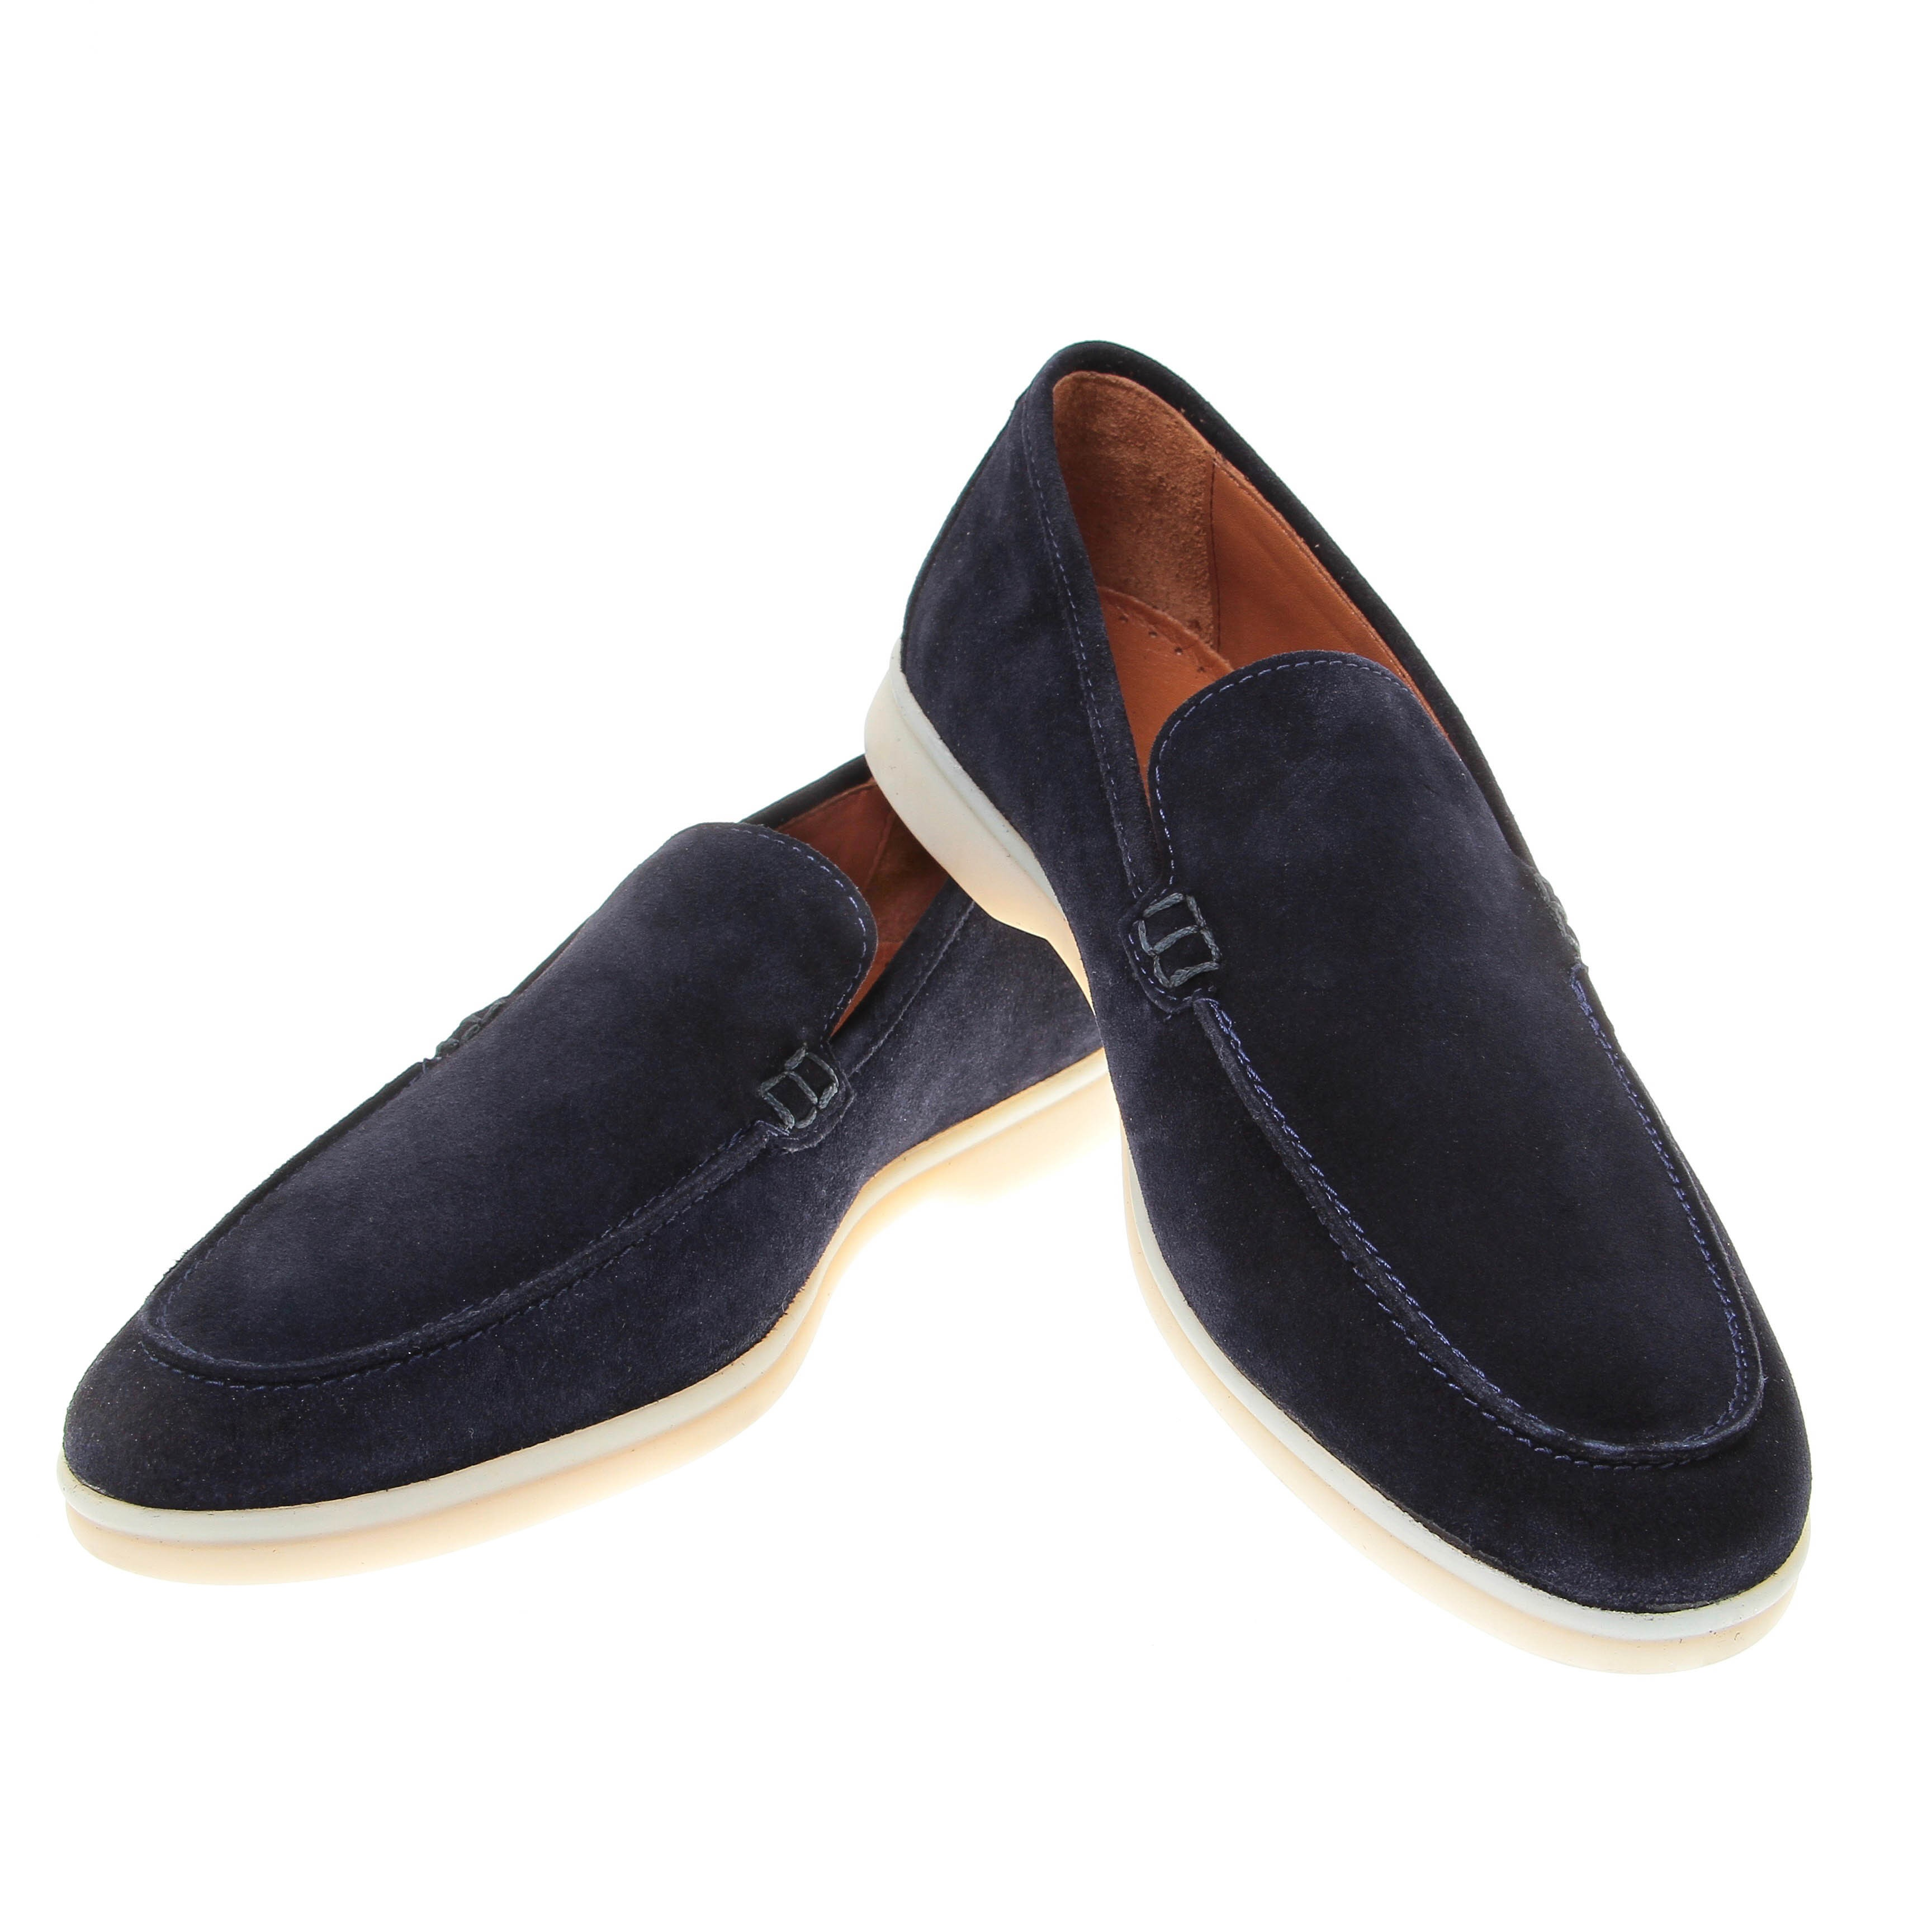 Mocassins : Marine - Veau Velours - Made in Italy (Shoes)